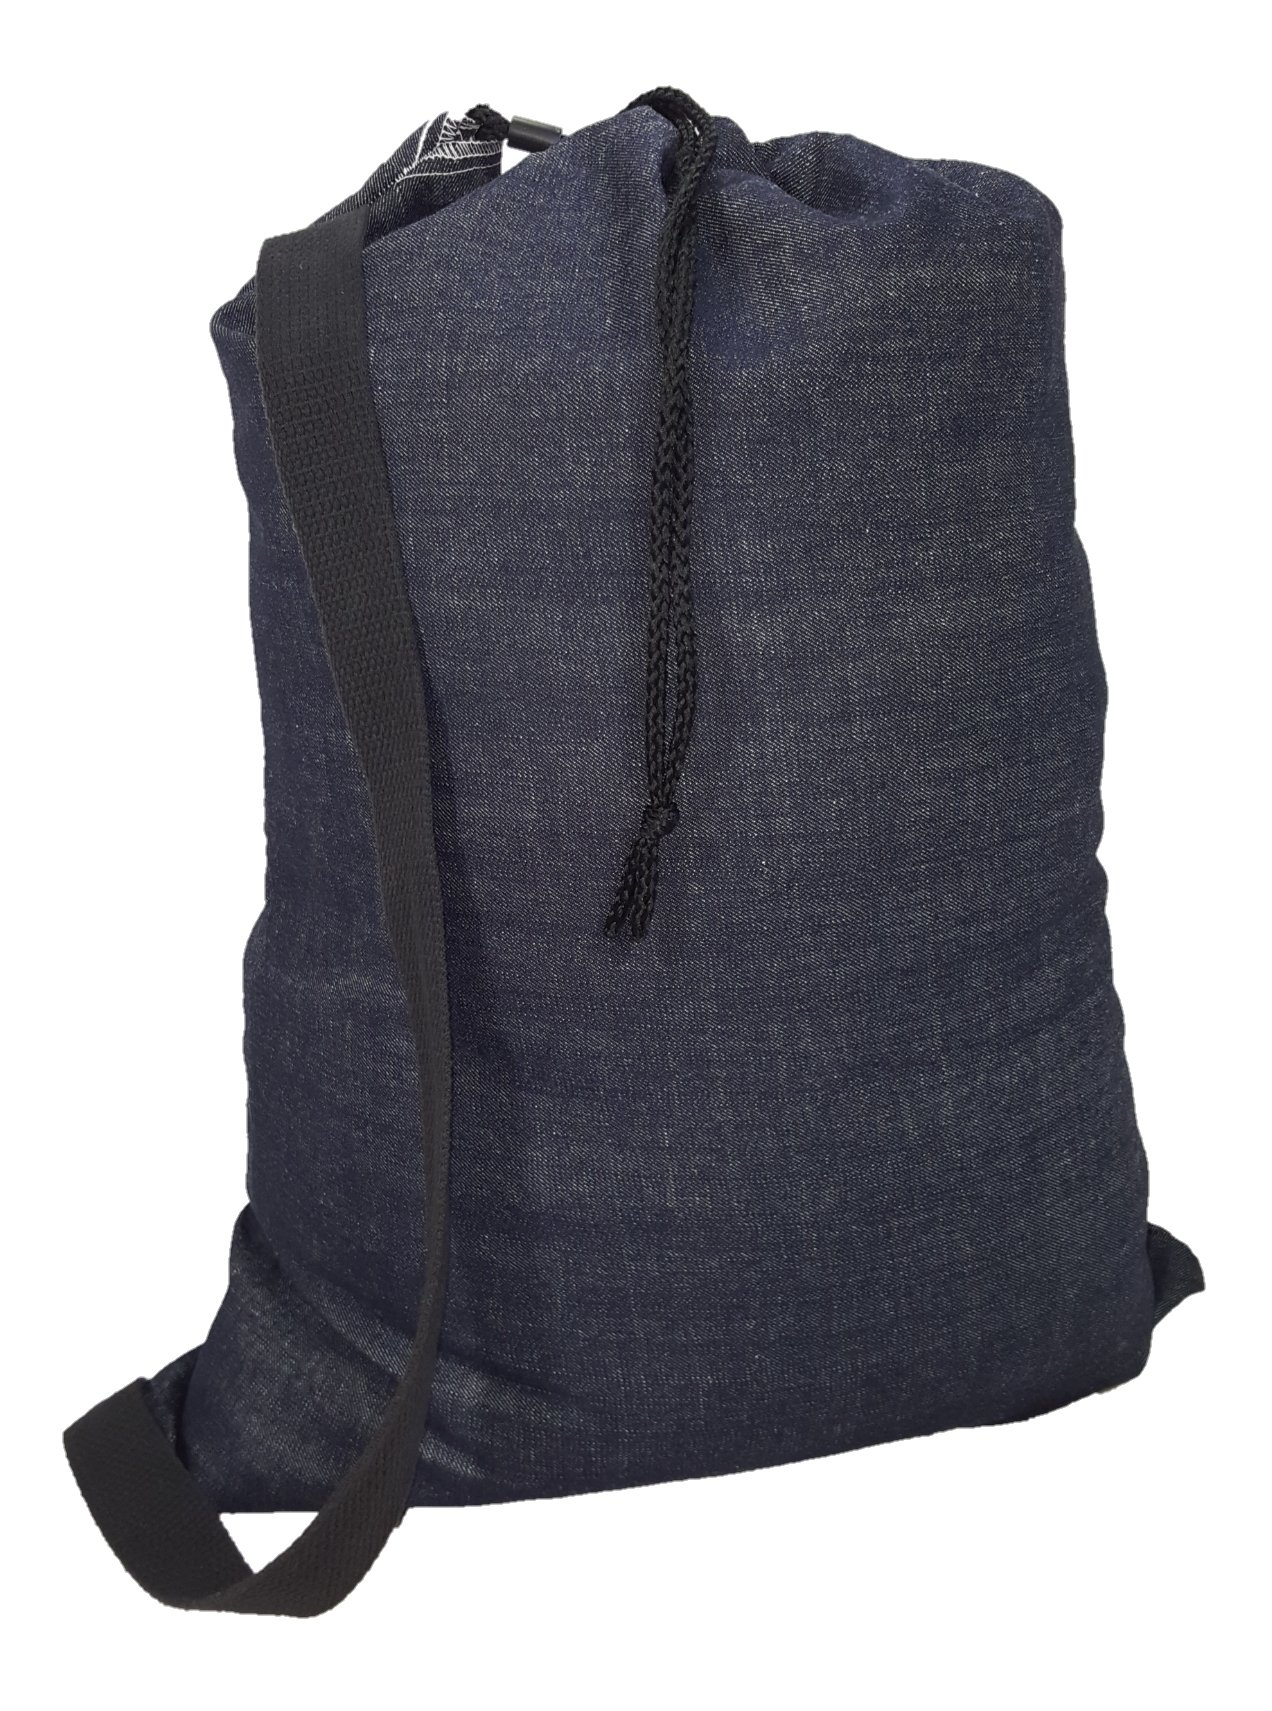 Ameratex Heavy Duty 10 oz Denim Laundry Bag with Shoulder Strap 22in x 28in - Made in the USA by Ameratex